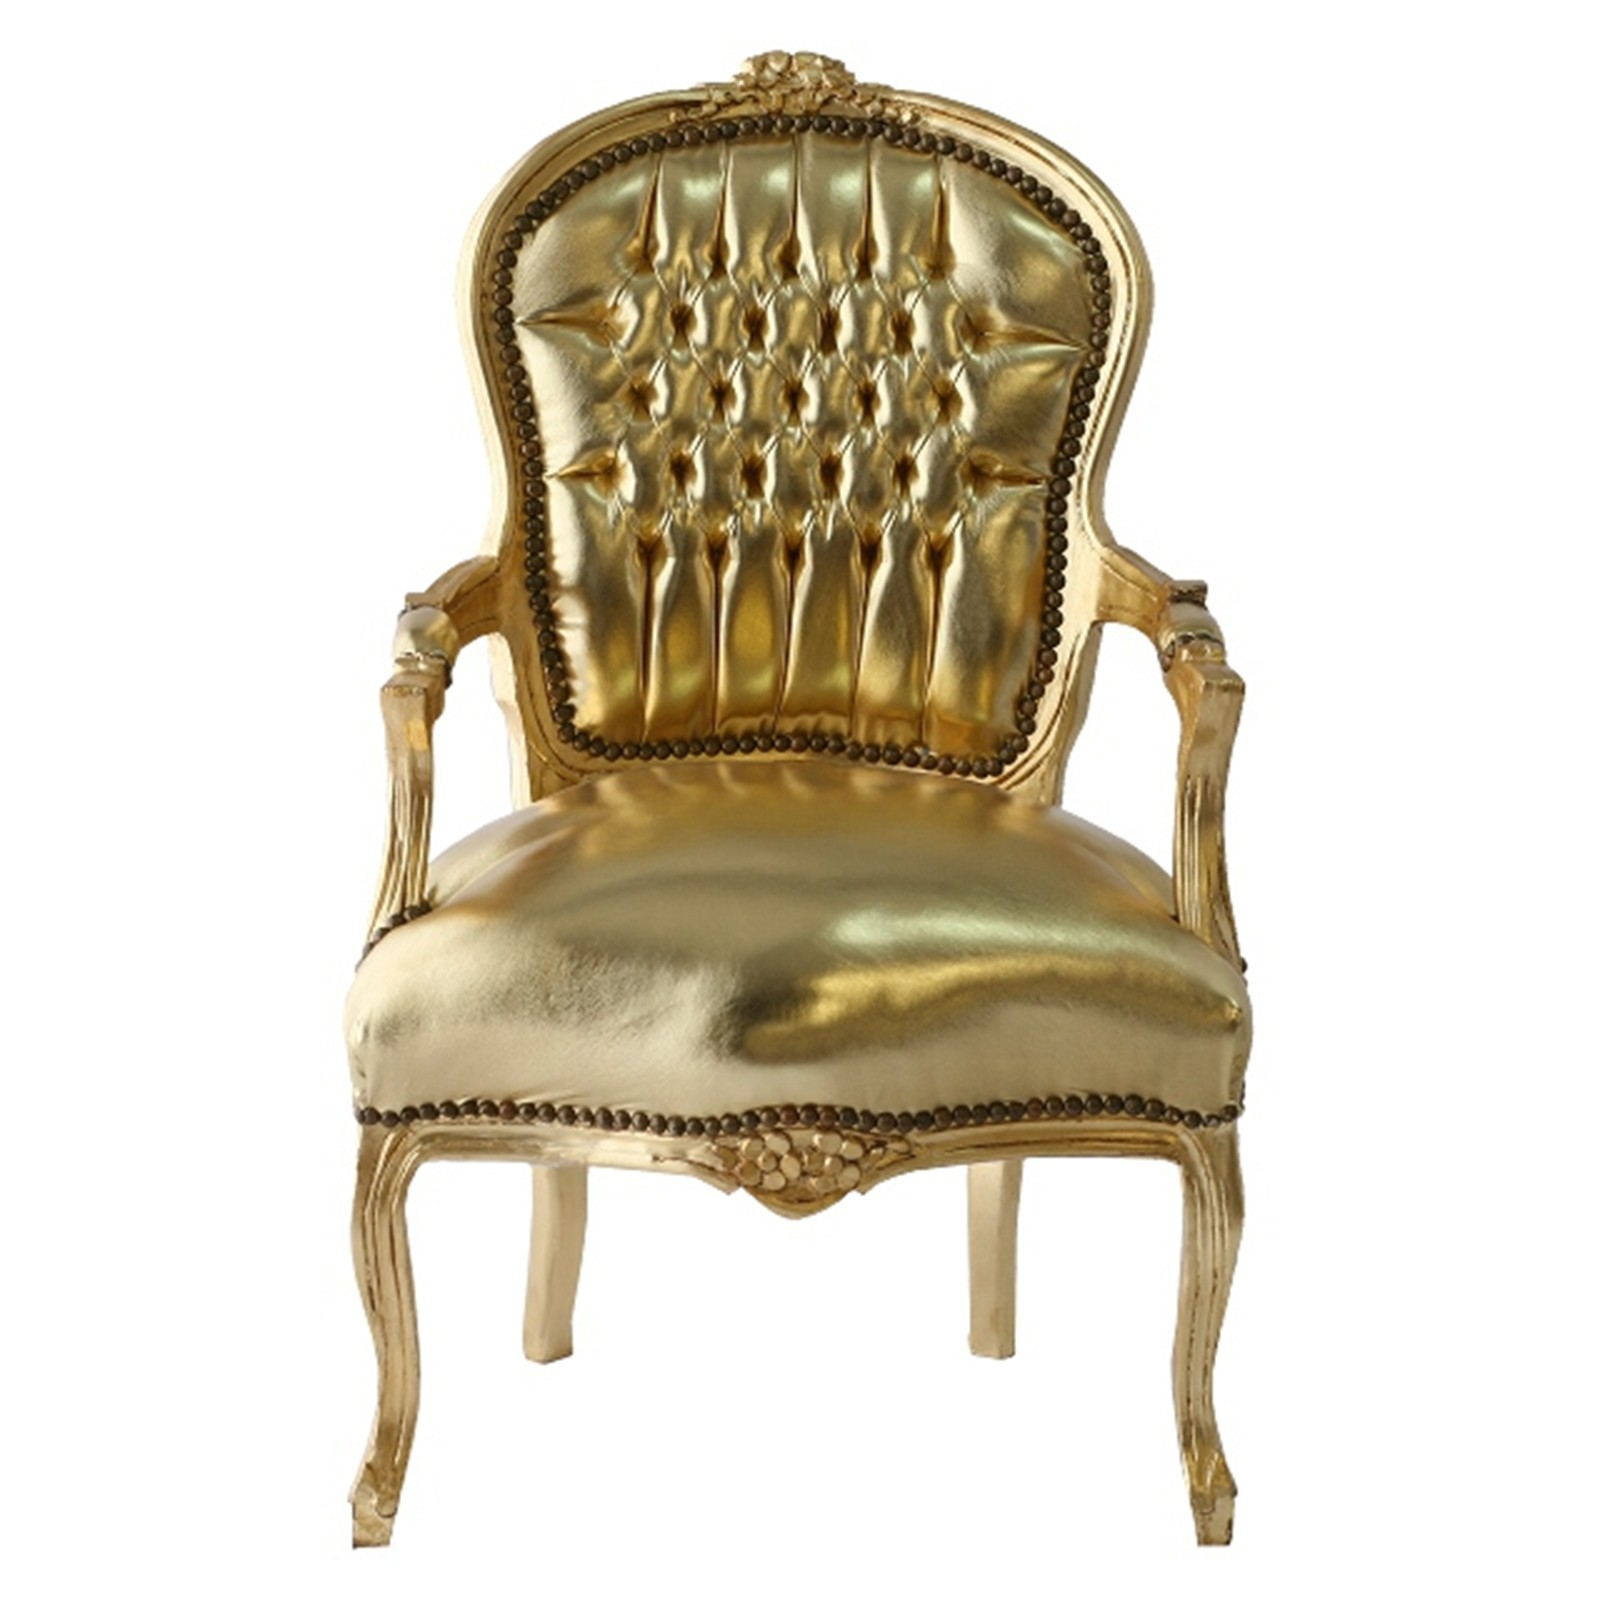 salon armchair accents chair antique style side chair gold faux